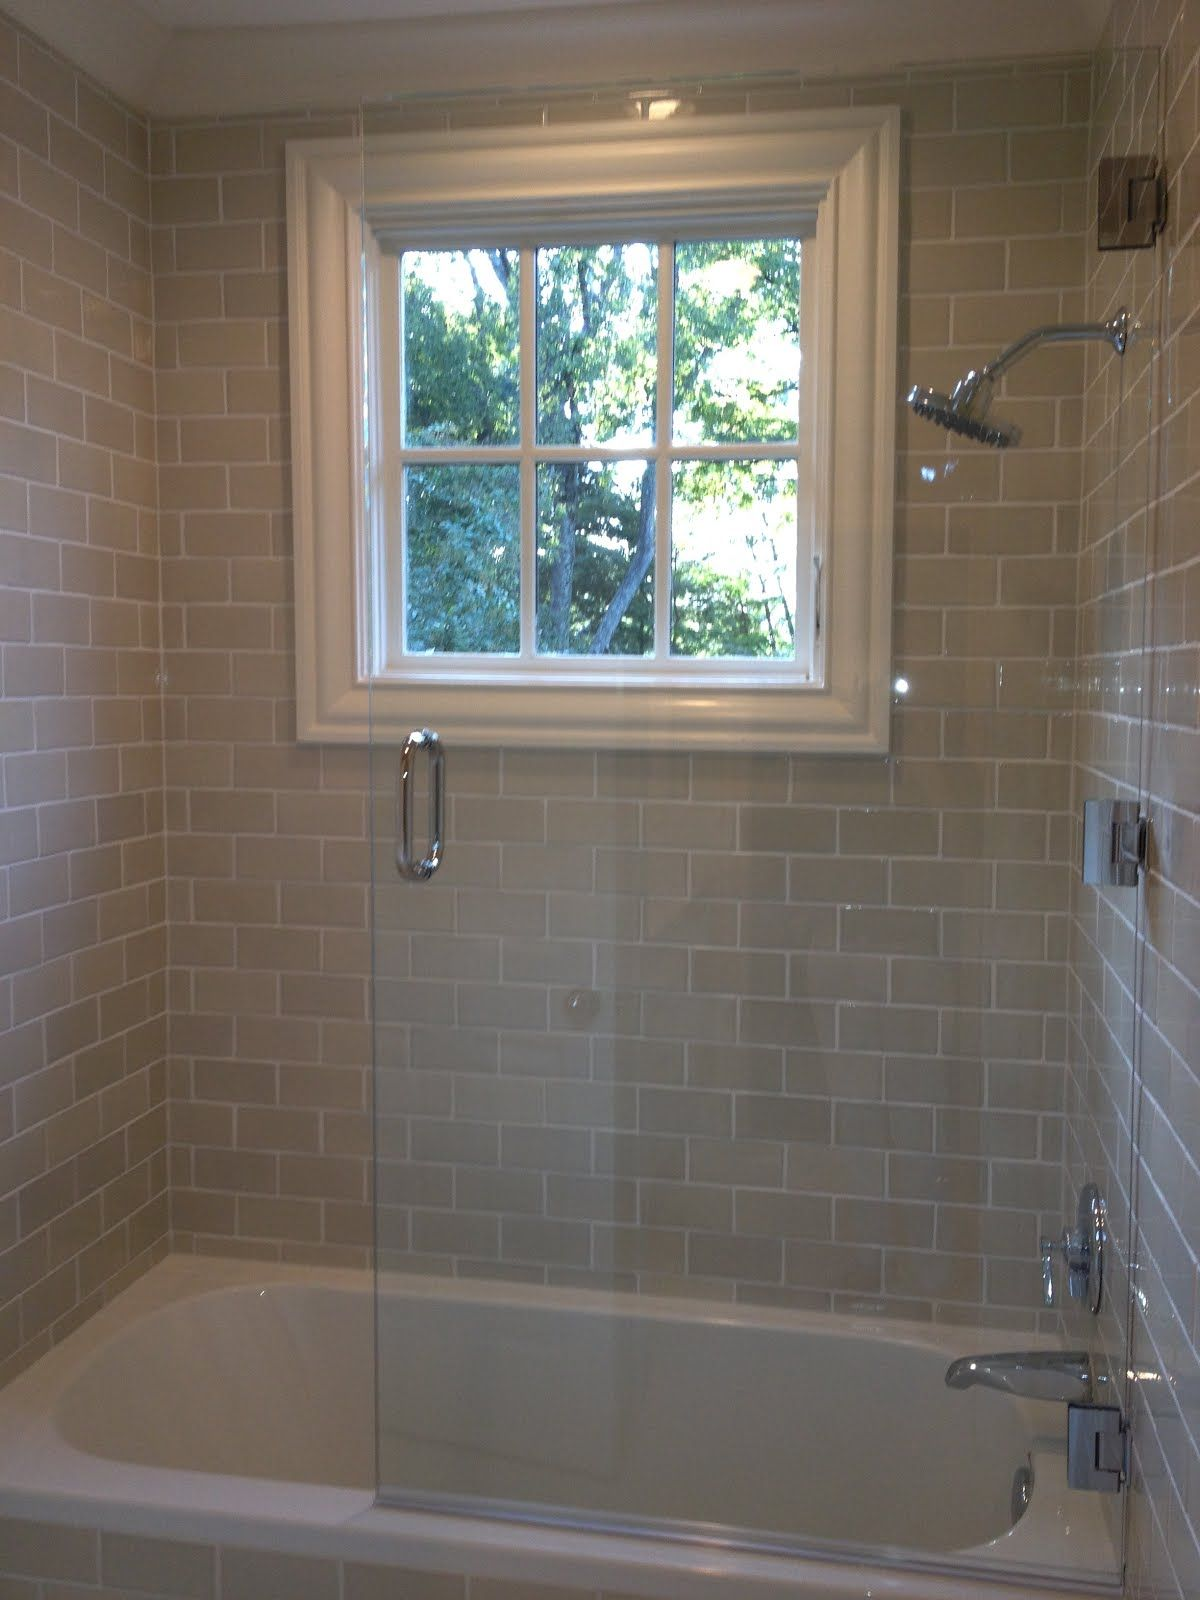 Shower with window ideas  love the gray subway tiles recessed lighting and glass shower door